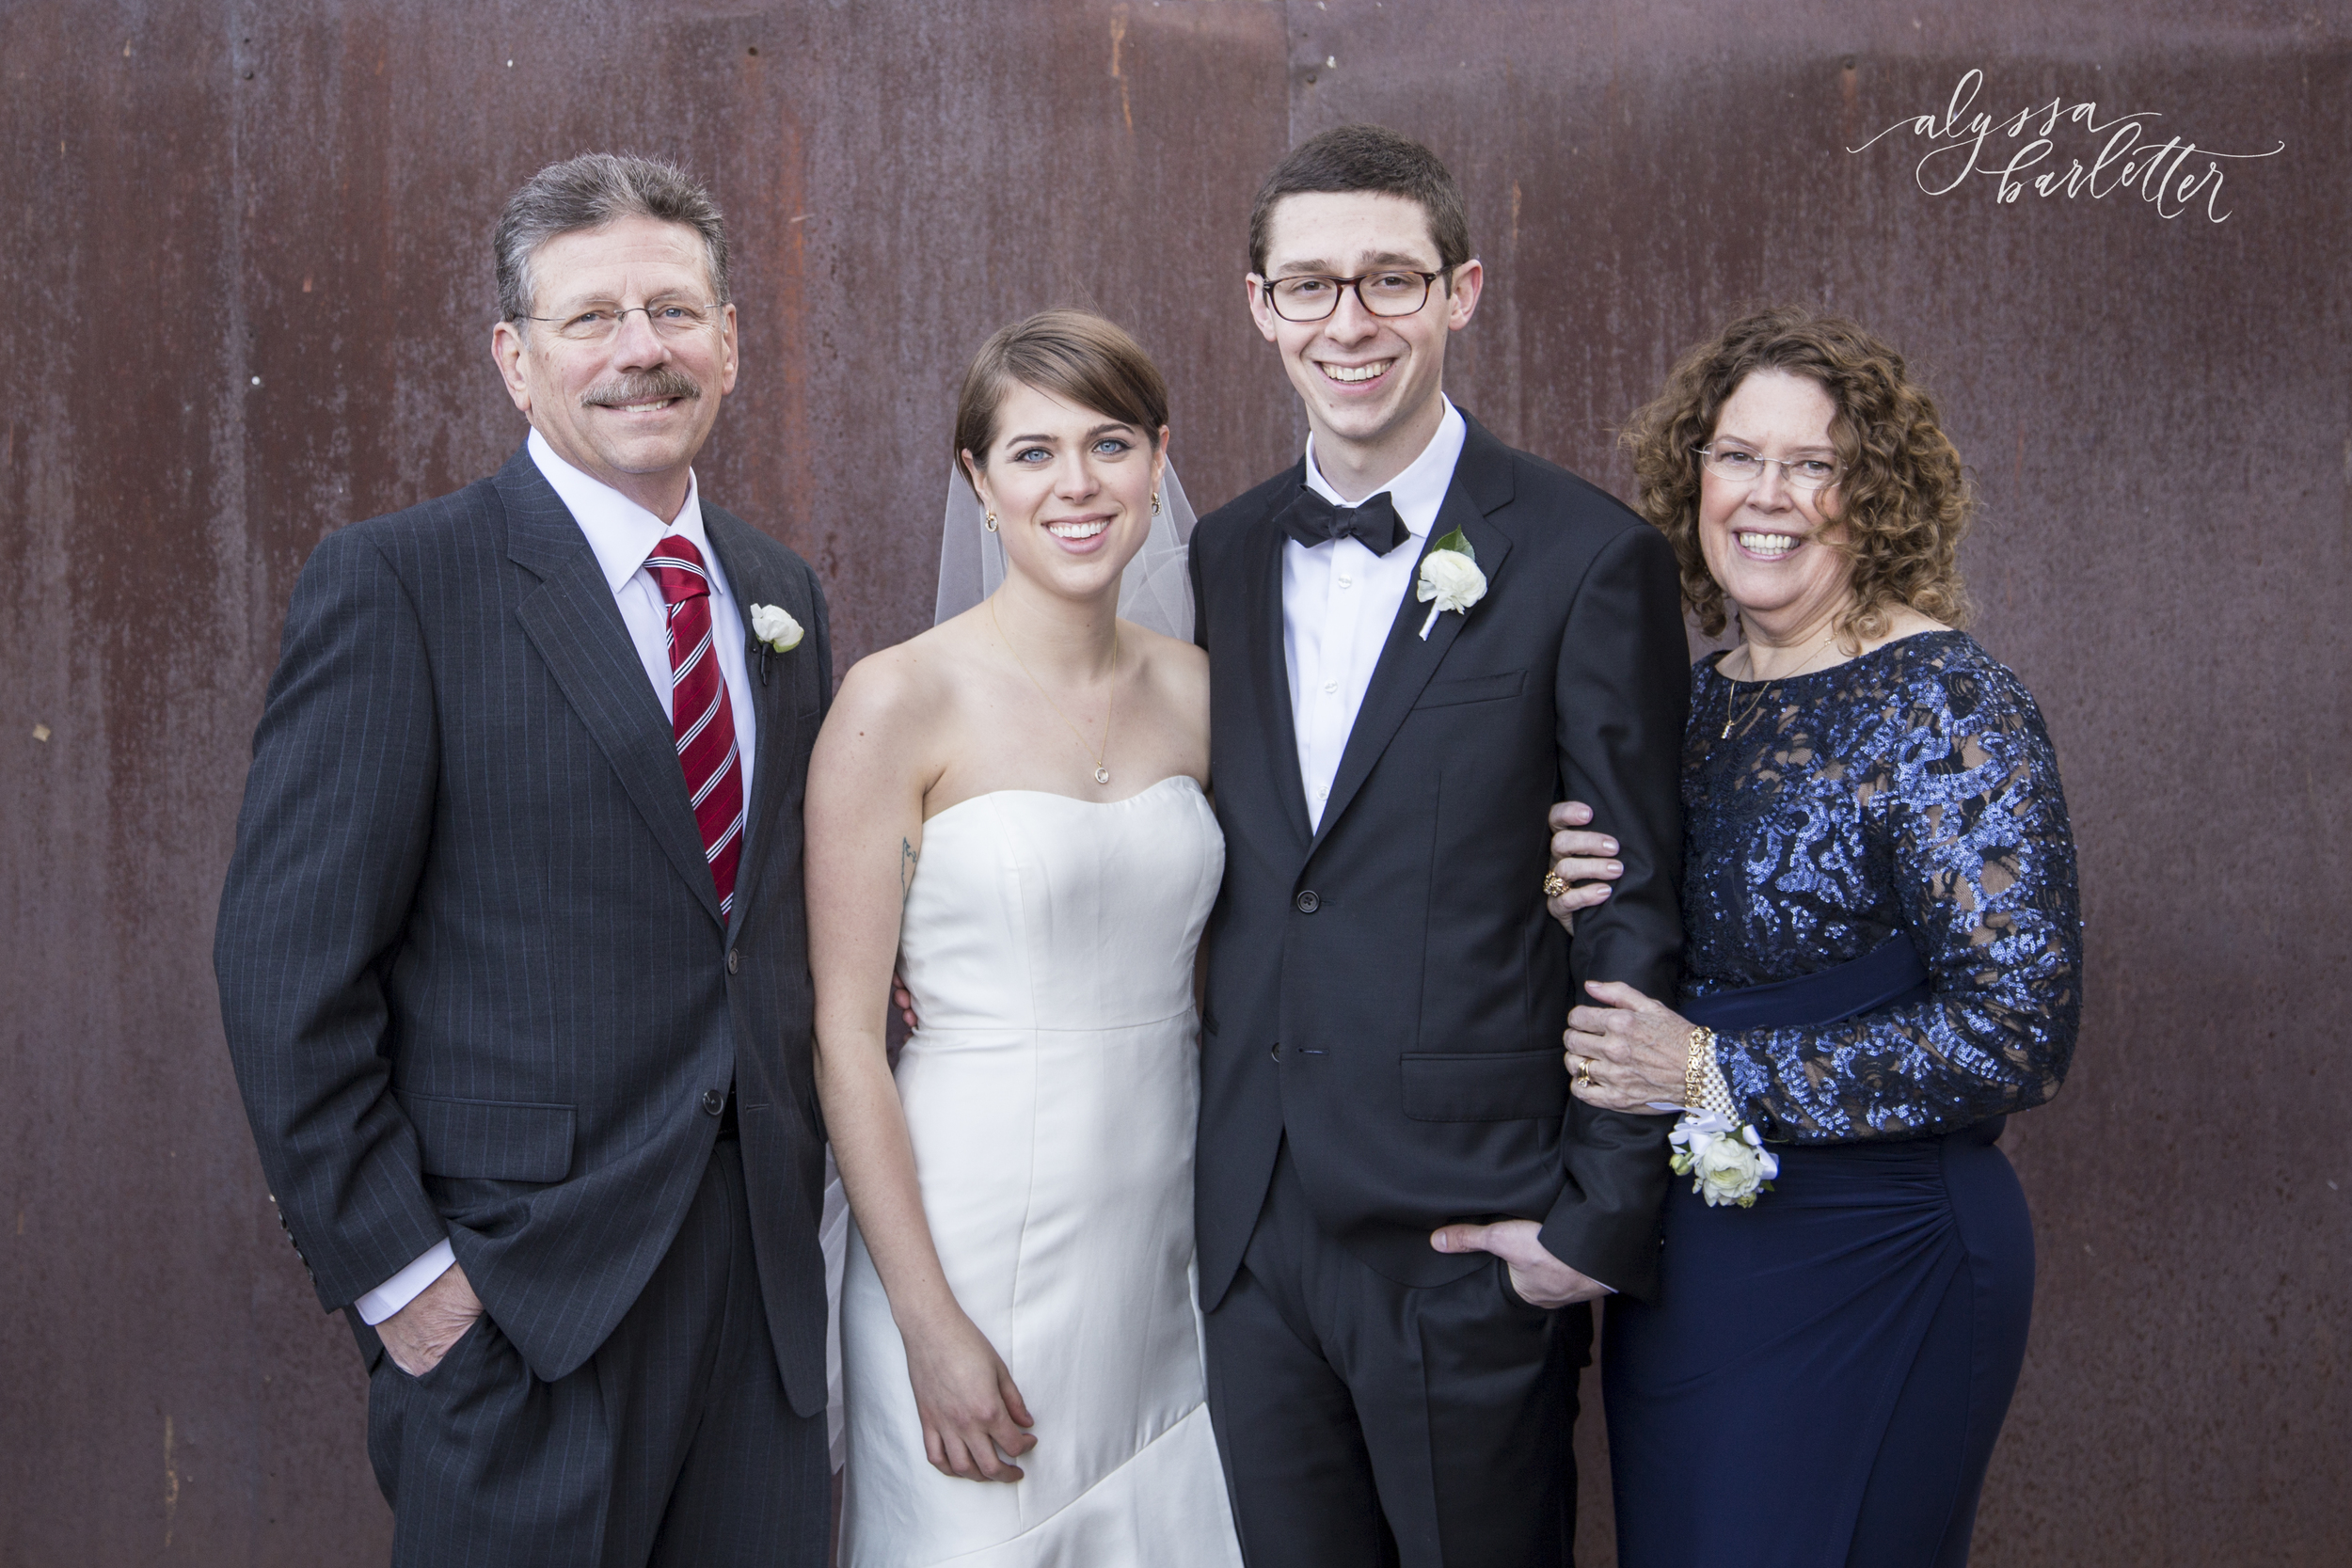 wedding photography family formals group posing parents feasts of fancy hobbs